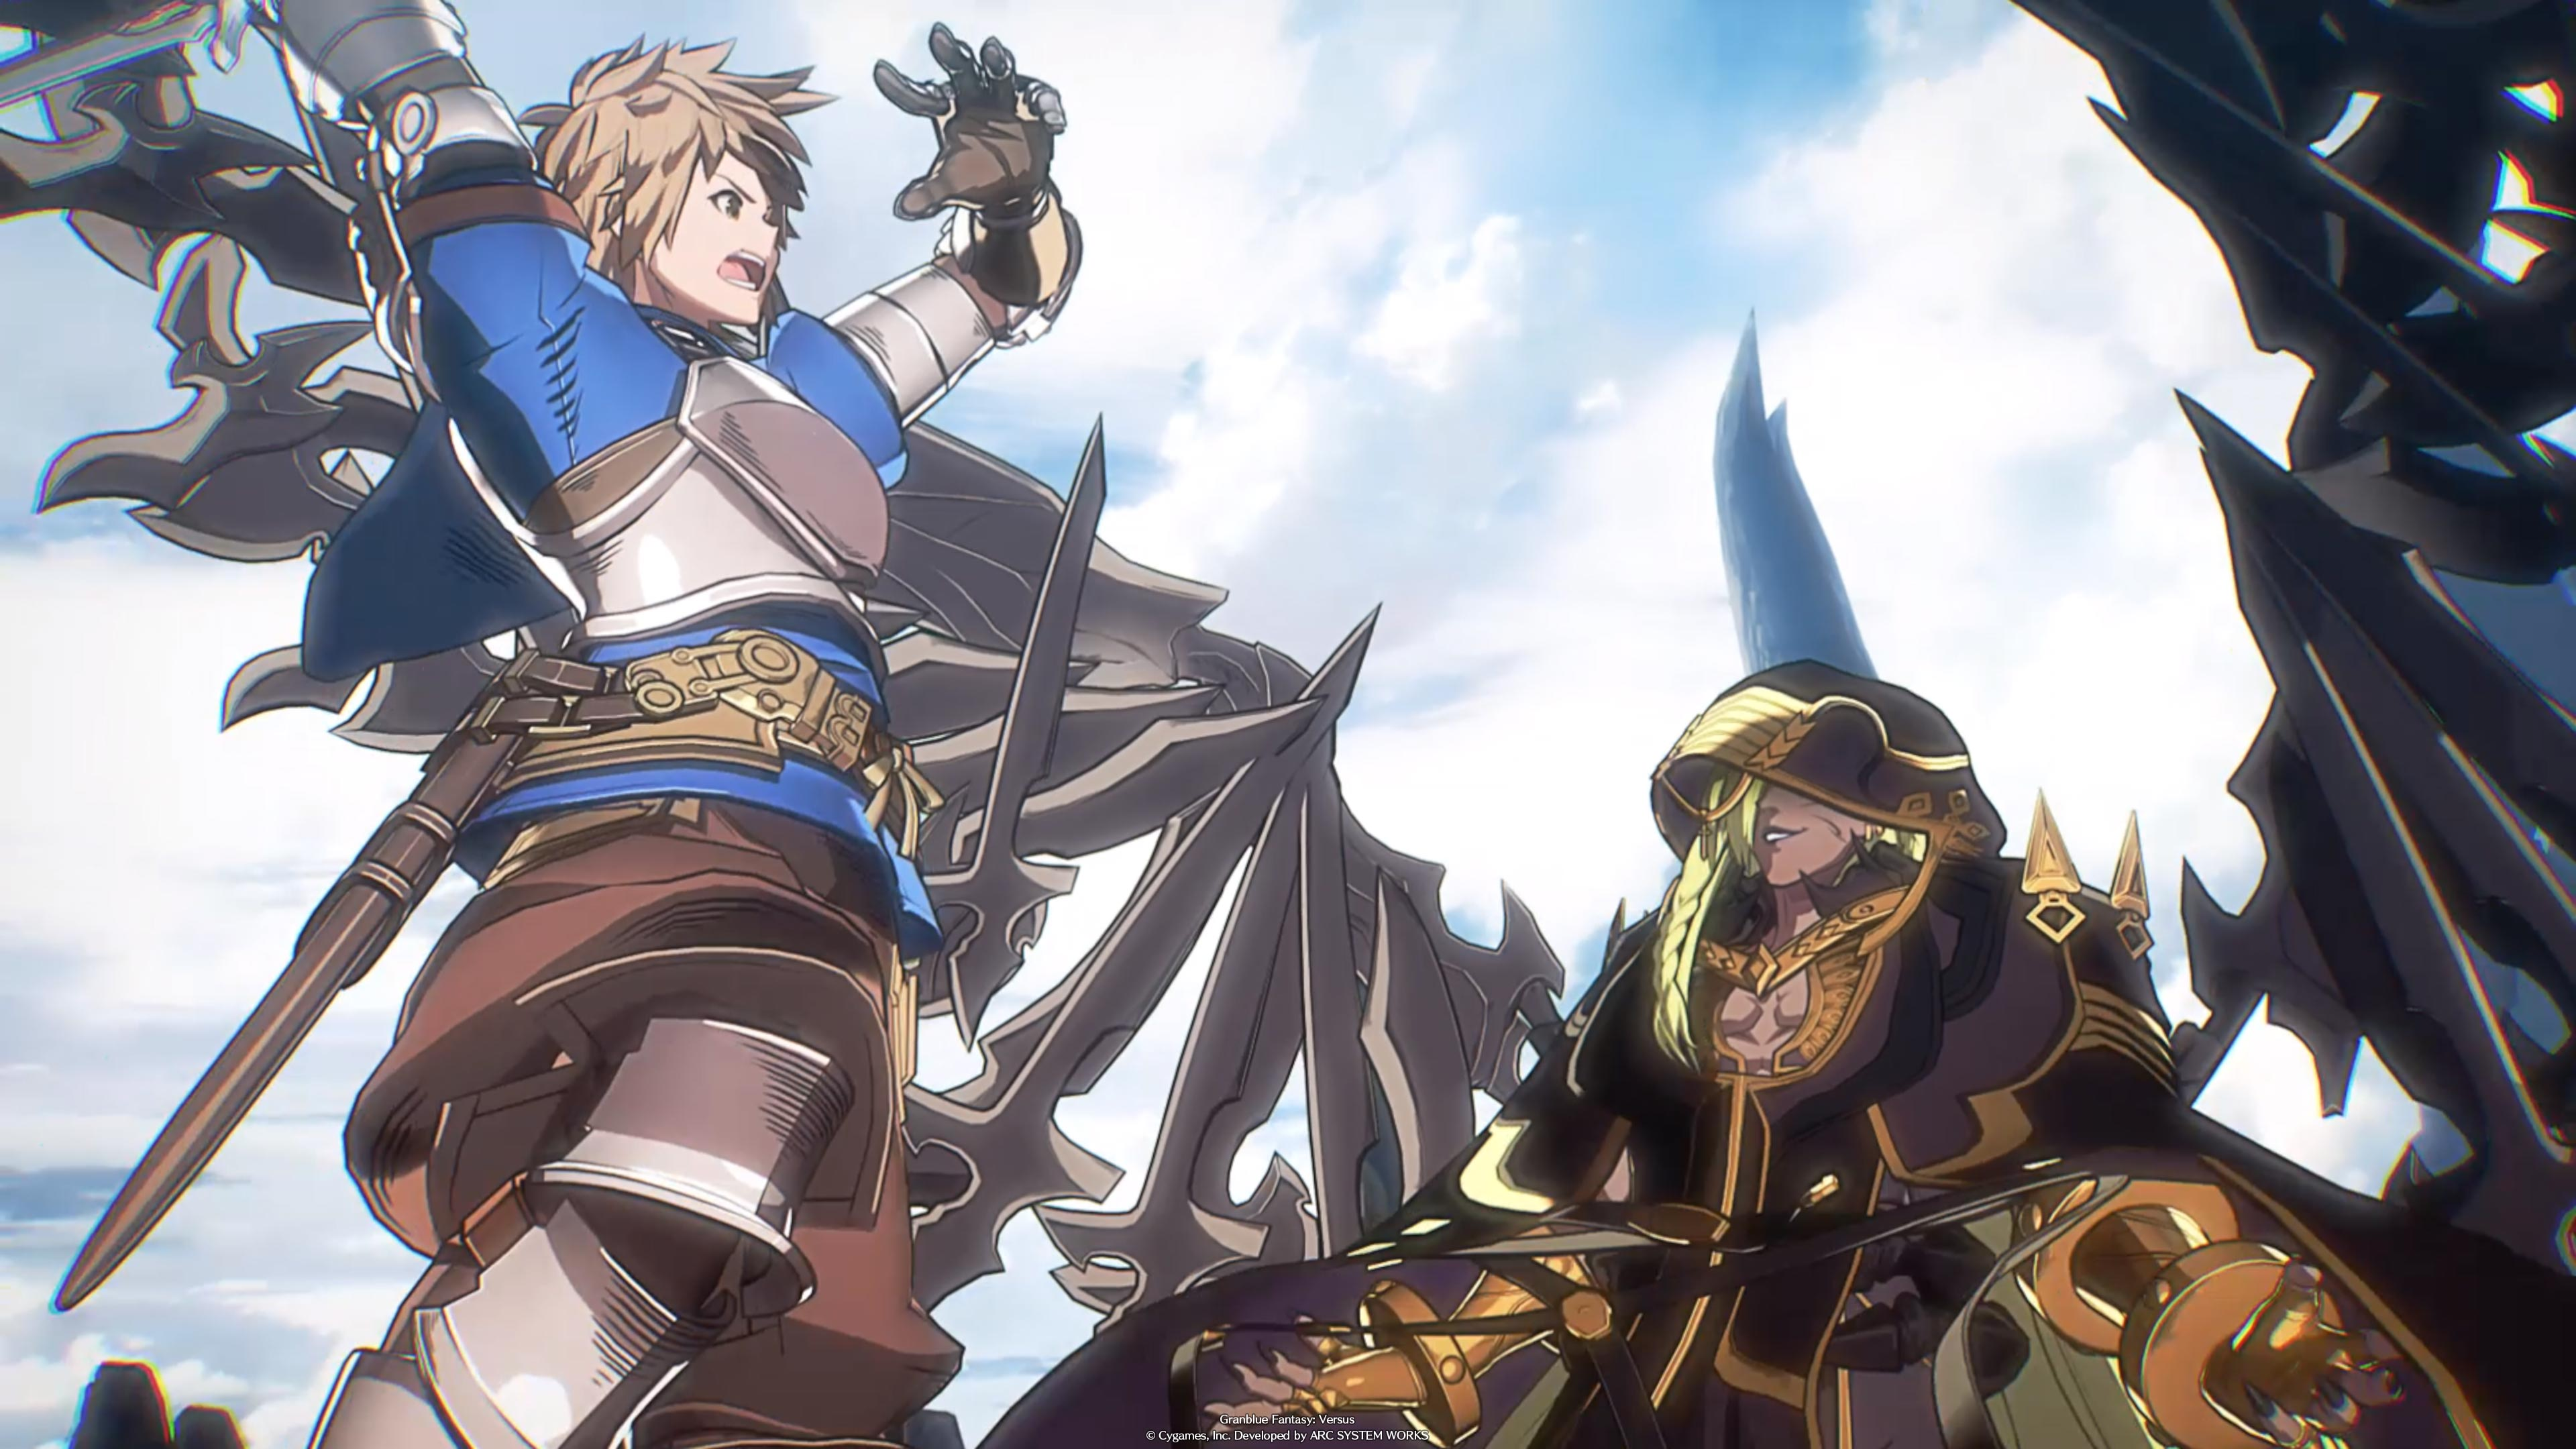 Granblue Fantasy: Versus review 1 out of 3 image gallery